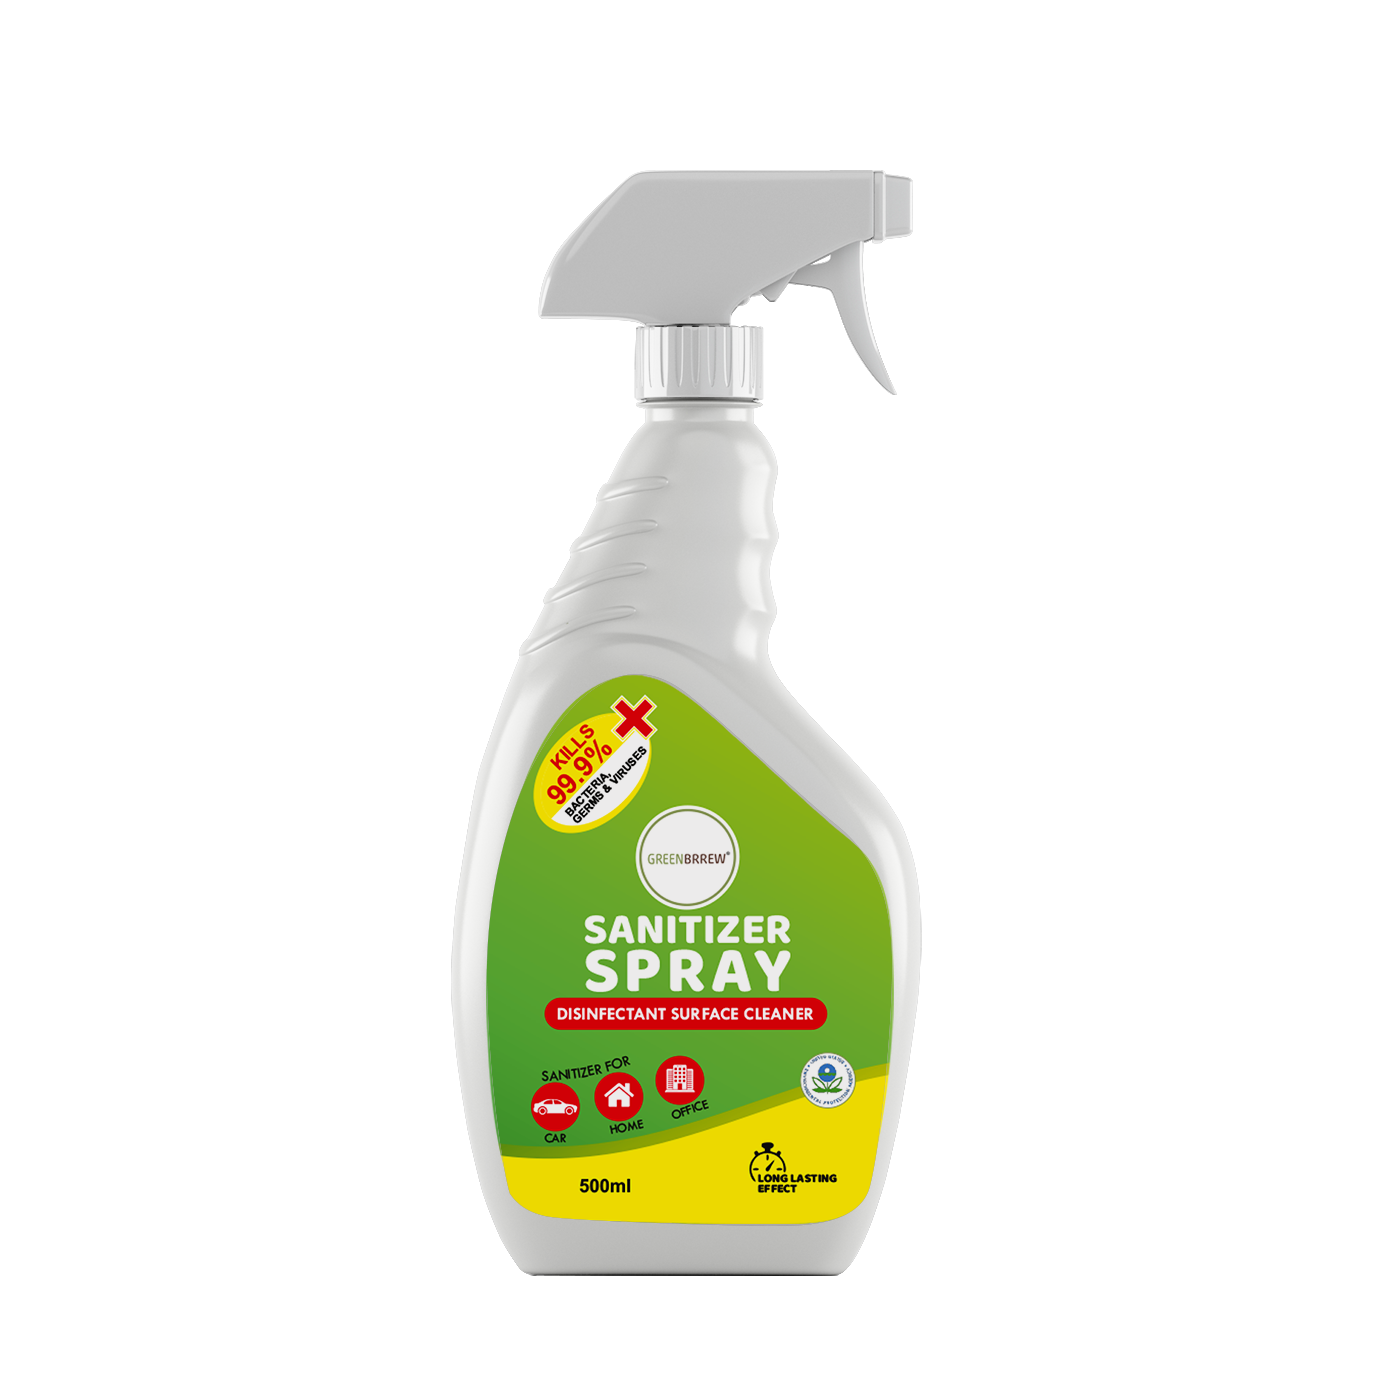 Sanitizer Spray, Disinfectant Surface Cleaner, 500ml